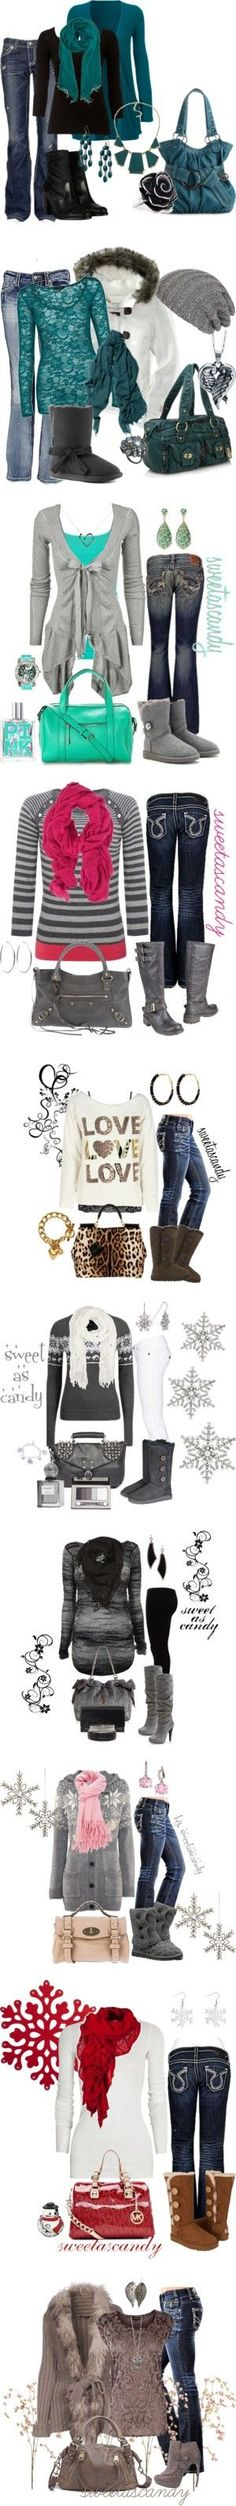 """fav sets"" by sweetlikecandycane ❤ liked on Polyvore"